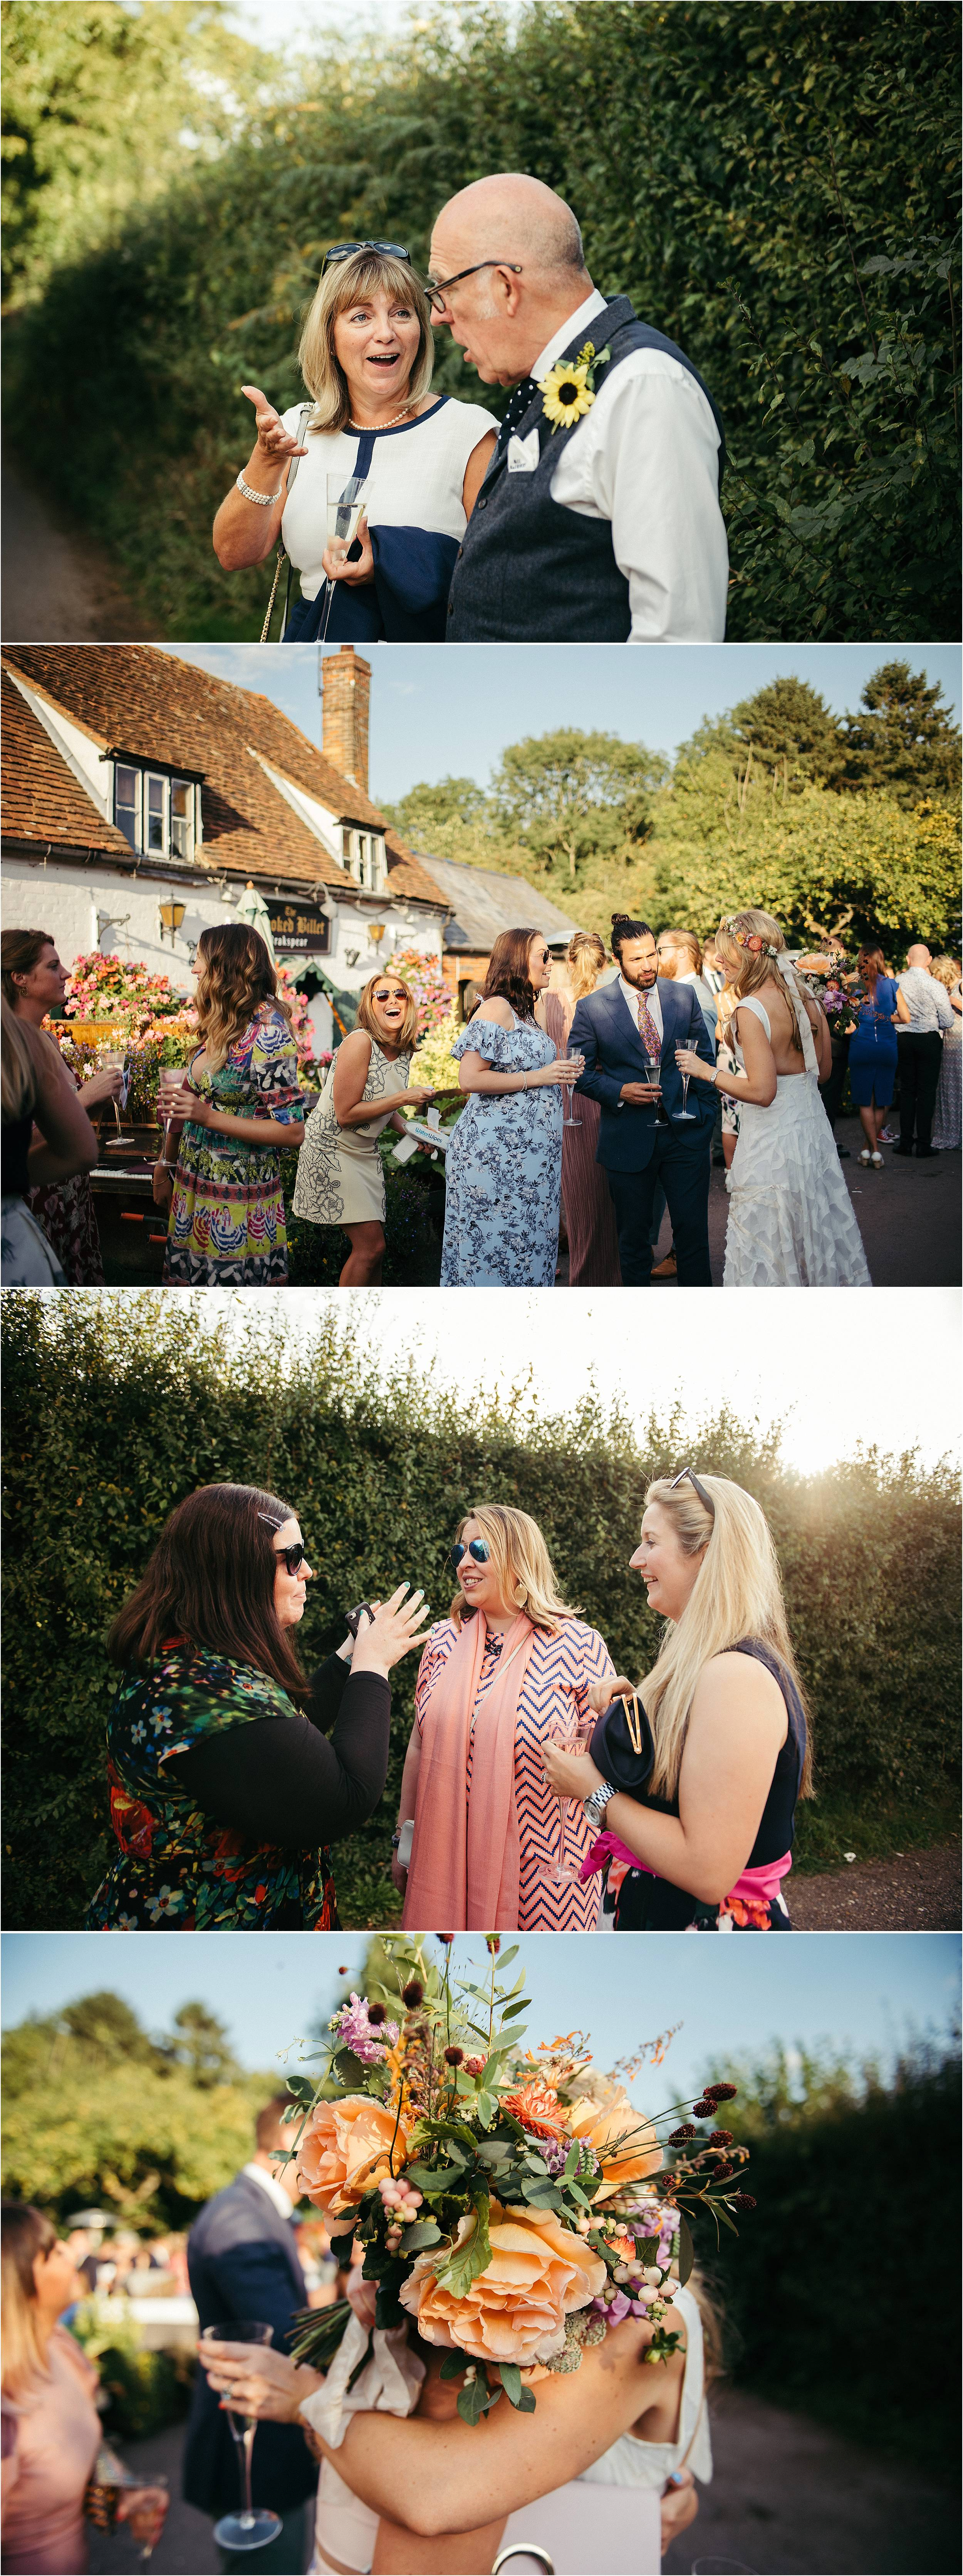 The Crooked Billet Pub Oxfordshire Wedding Photography_0086.jpg